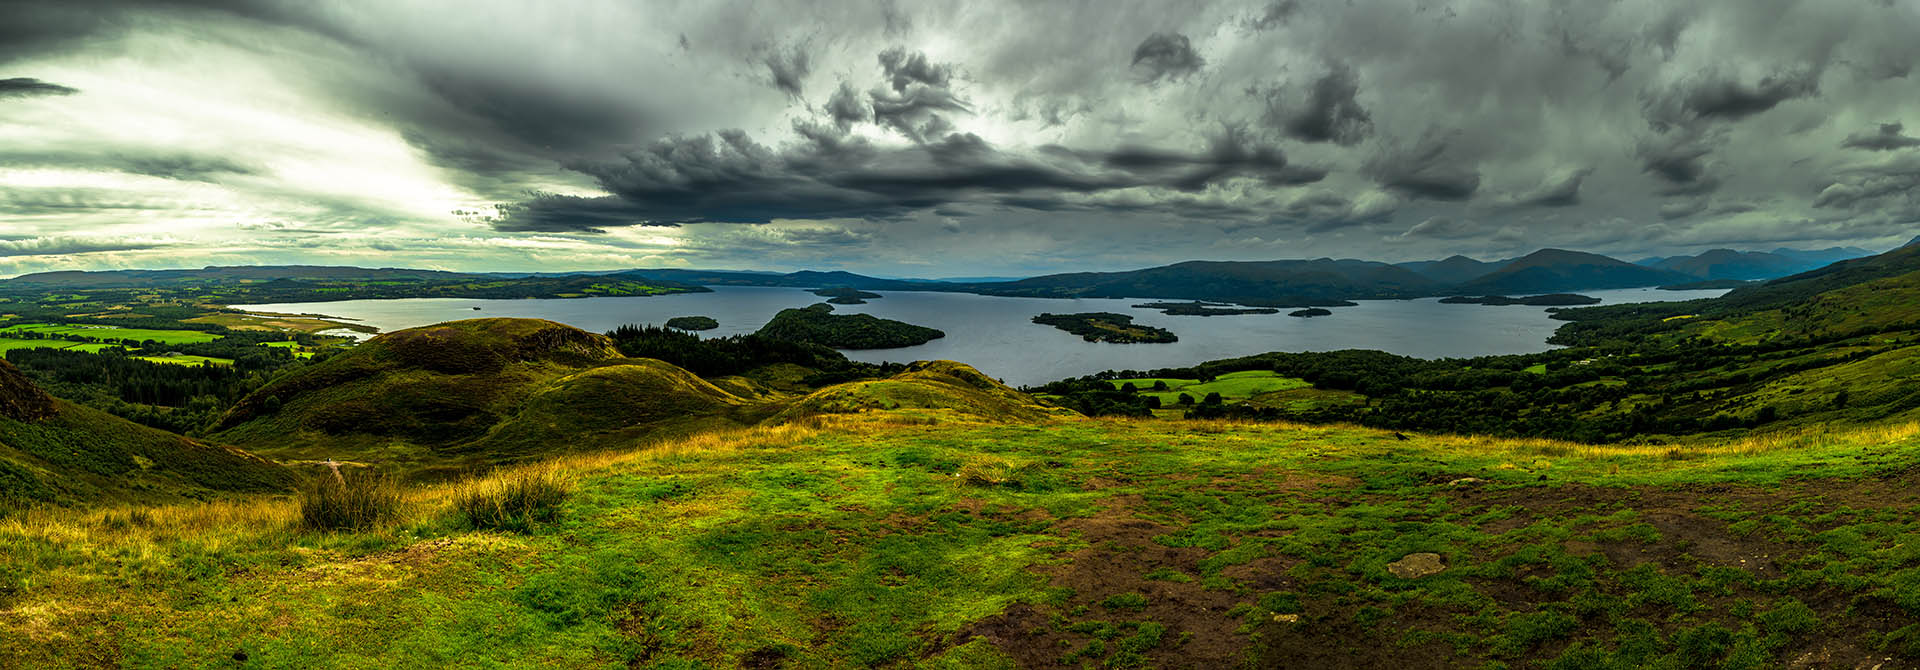 A panorama view of Loch Lomond on a moody day